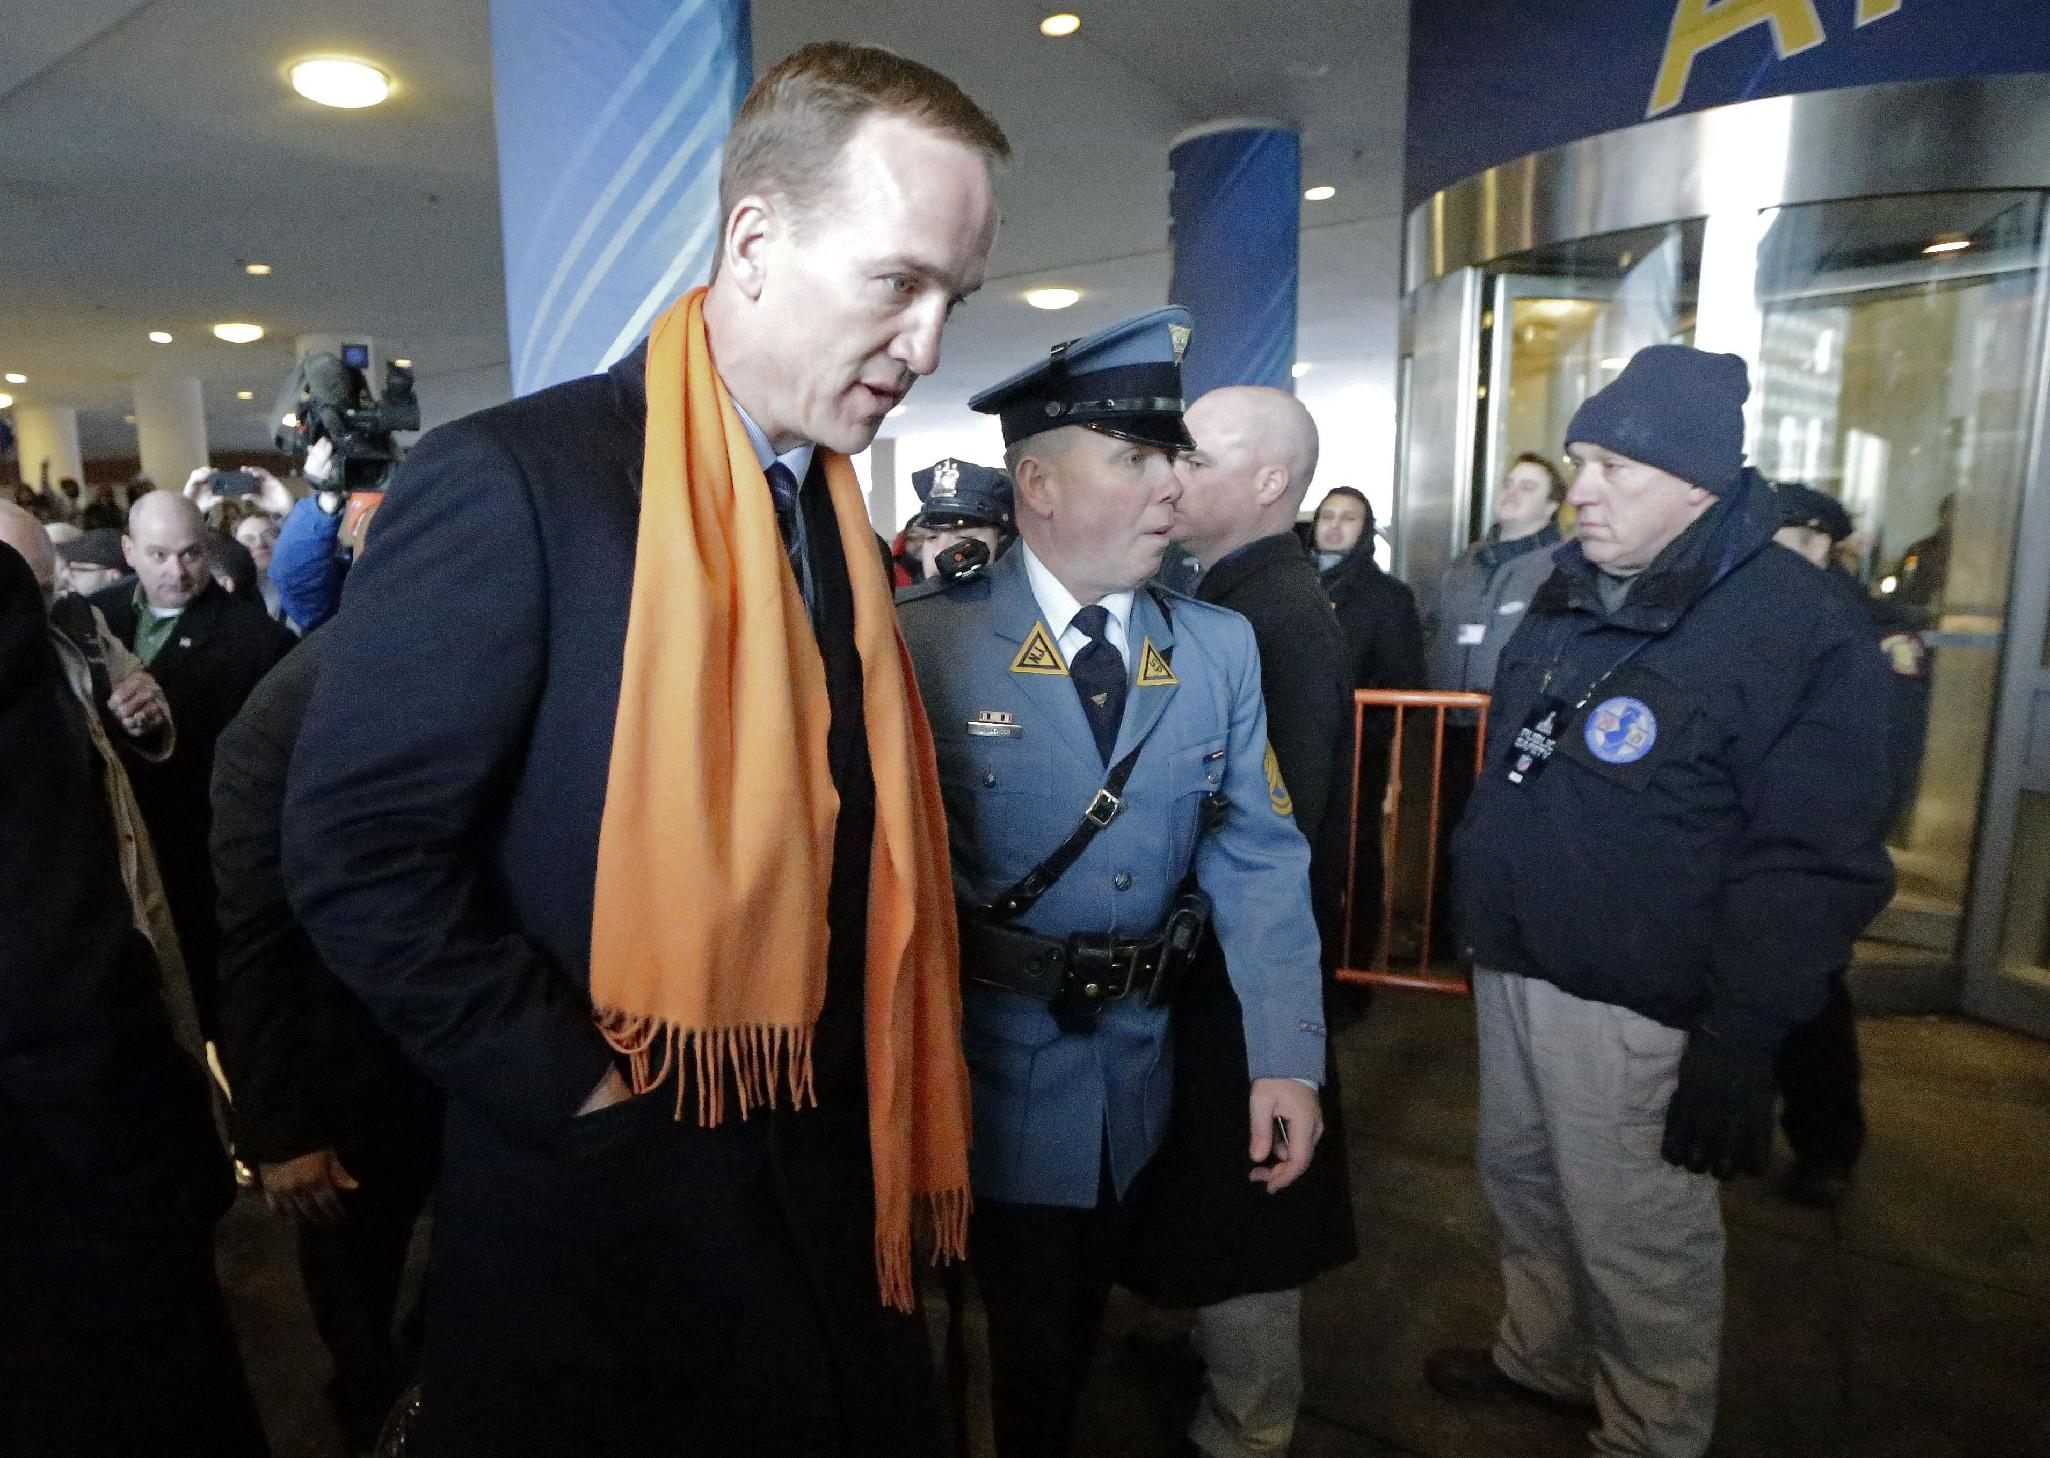 Denver Broncos quarterback Peyton Manning is escorted to the team hotel Sunday, Jan. 26, 2014, in Jersey City, N.J. The Broncos are scheduled to play the Seattle Seahawks in the NFL Super Bowl XLVIII football game Sunday, Feb. 2, in East Rutherford, N.J